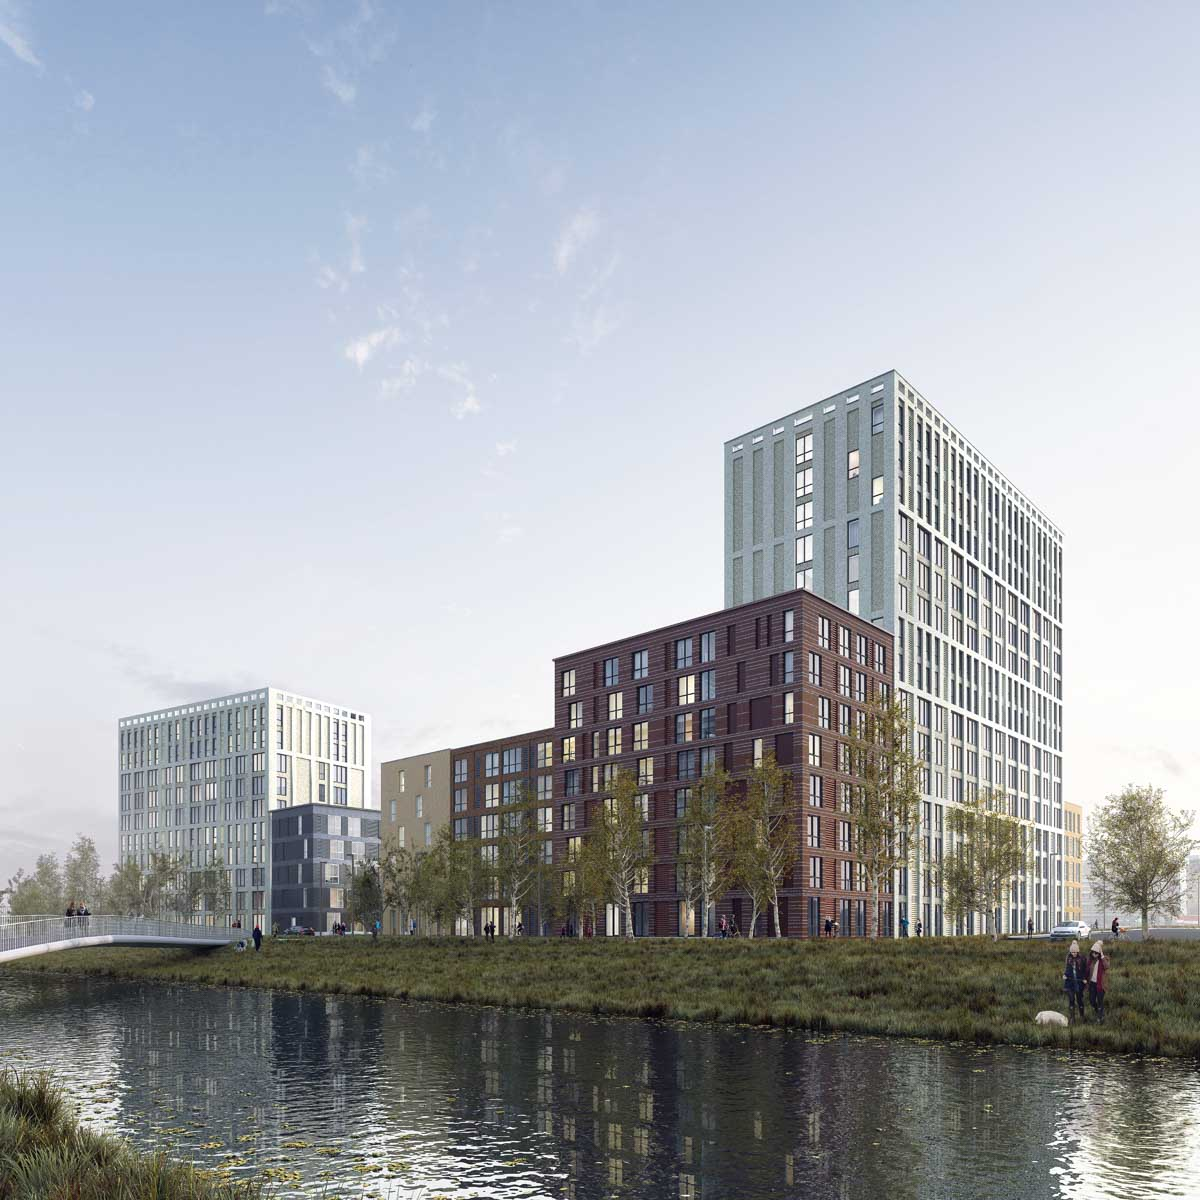 Render of OurDomain Amsterdam Diemen with canal and bridge during the day